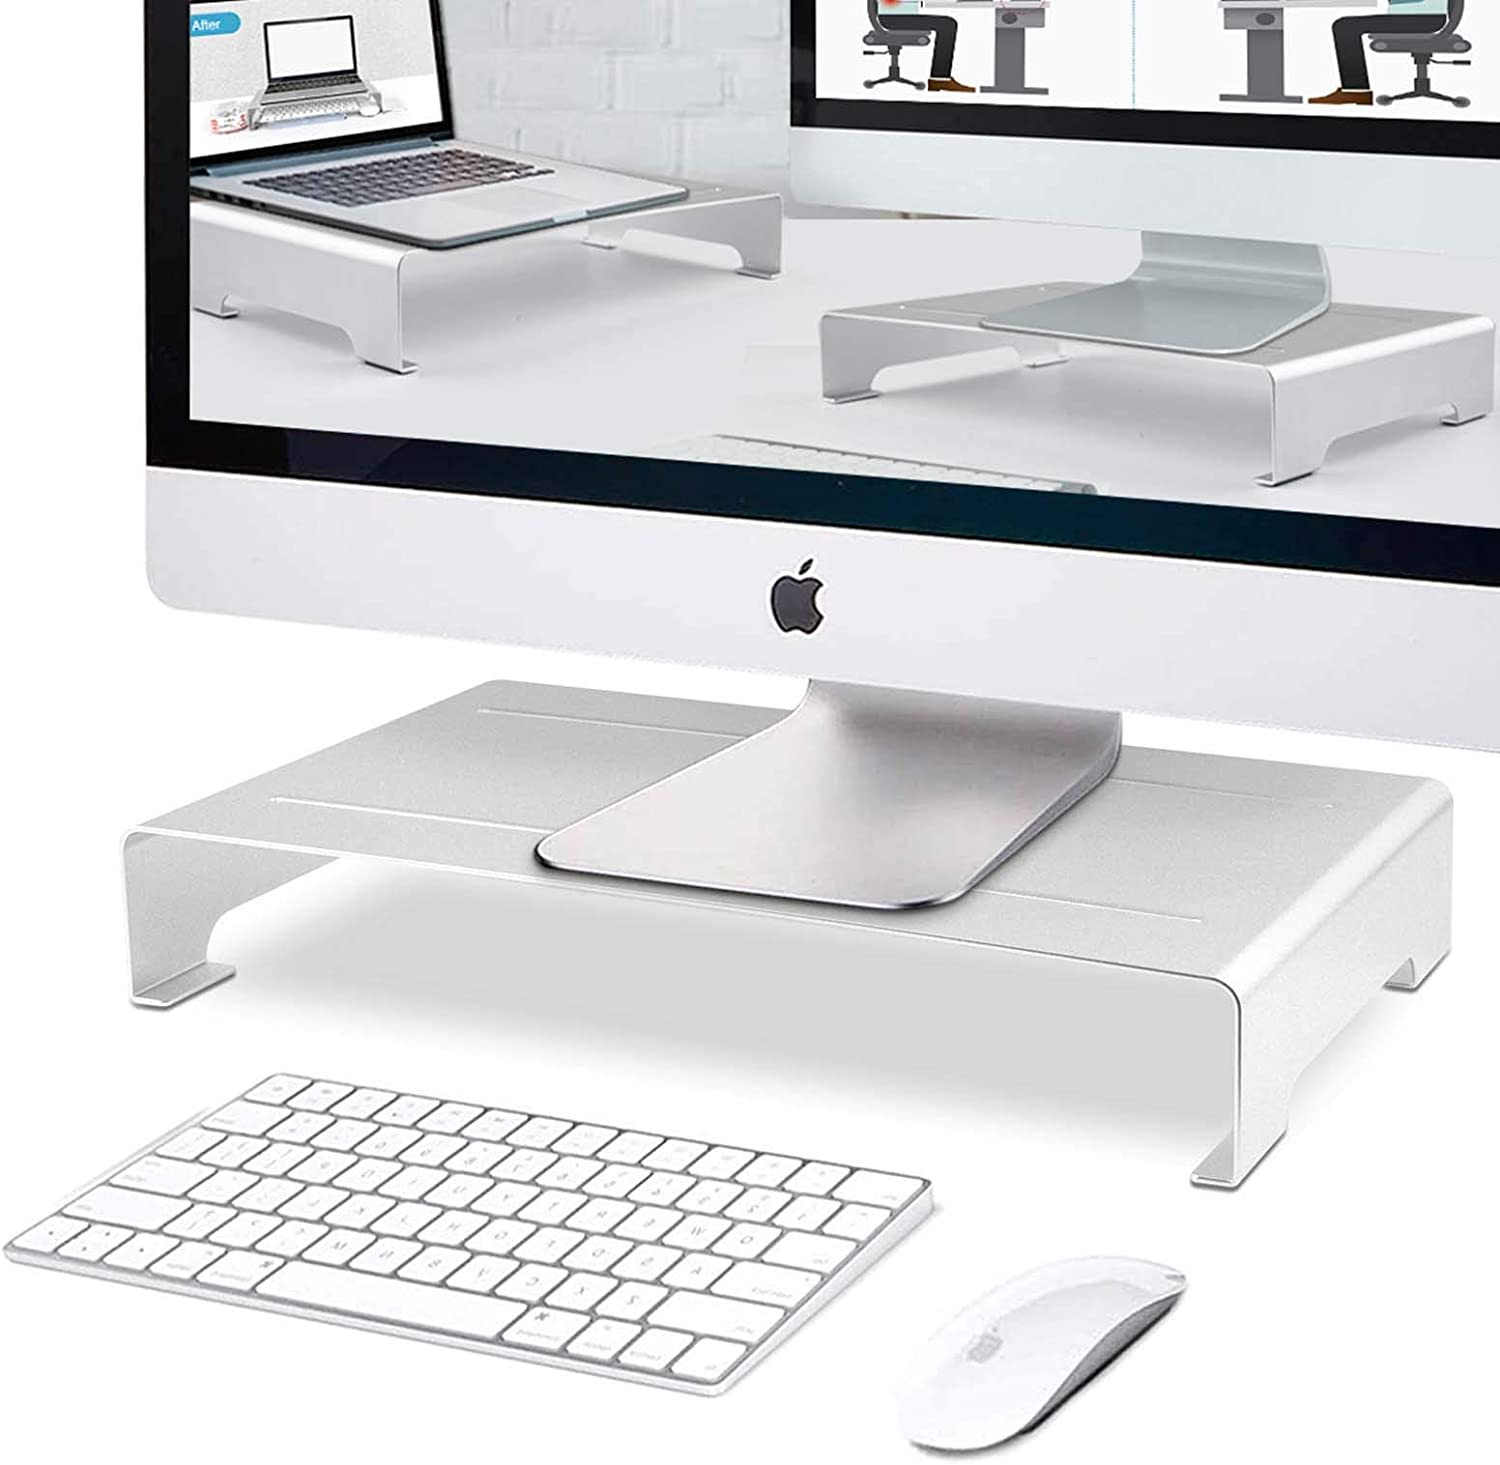 Monitor Stand Riser, RAINBEAN Custom Size Monitor Riser/Computer Stand for Home Office Business w/Sturdy Platform, PC Desk Stand for Keyboard Storage & Multi-Media Laptop Printer TV Screen